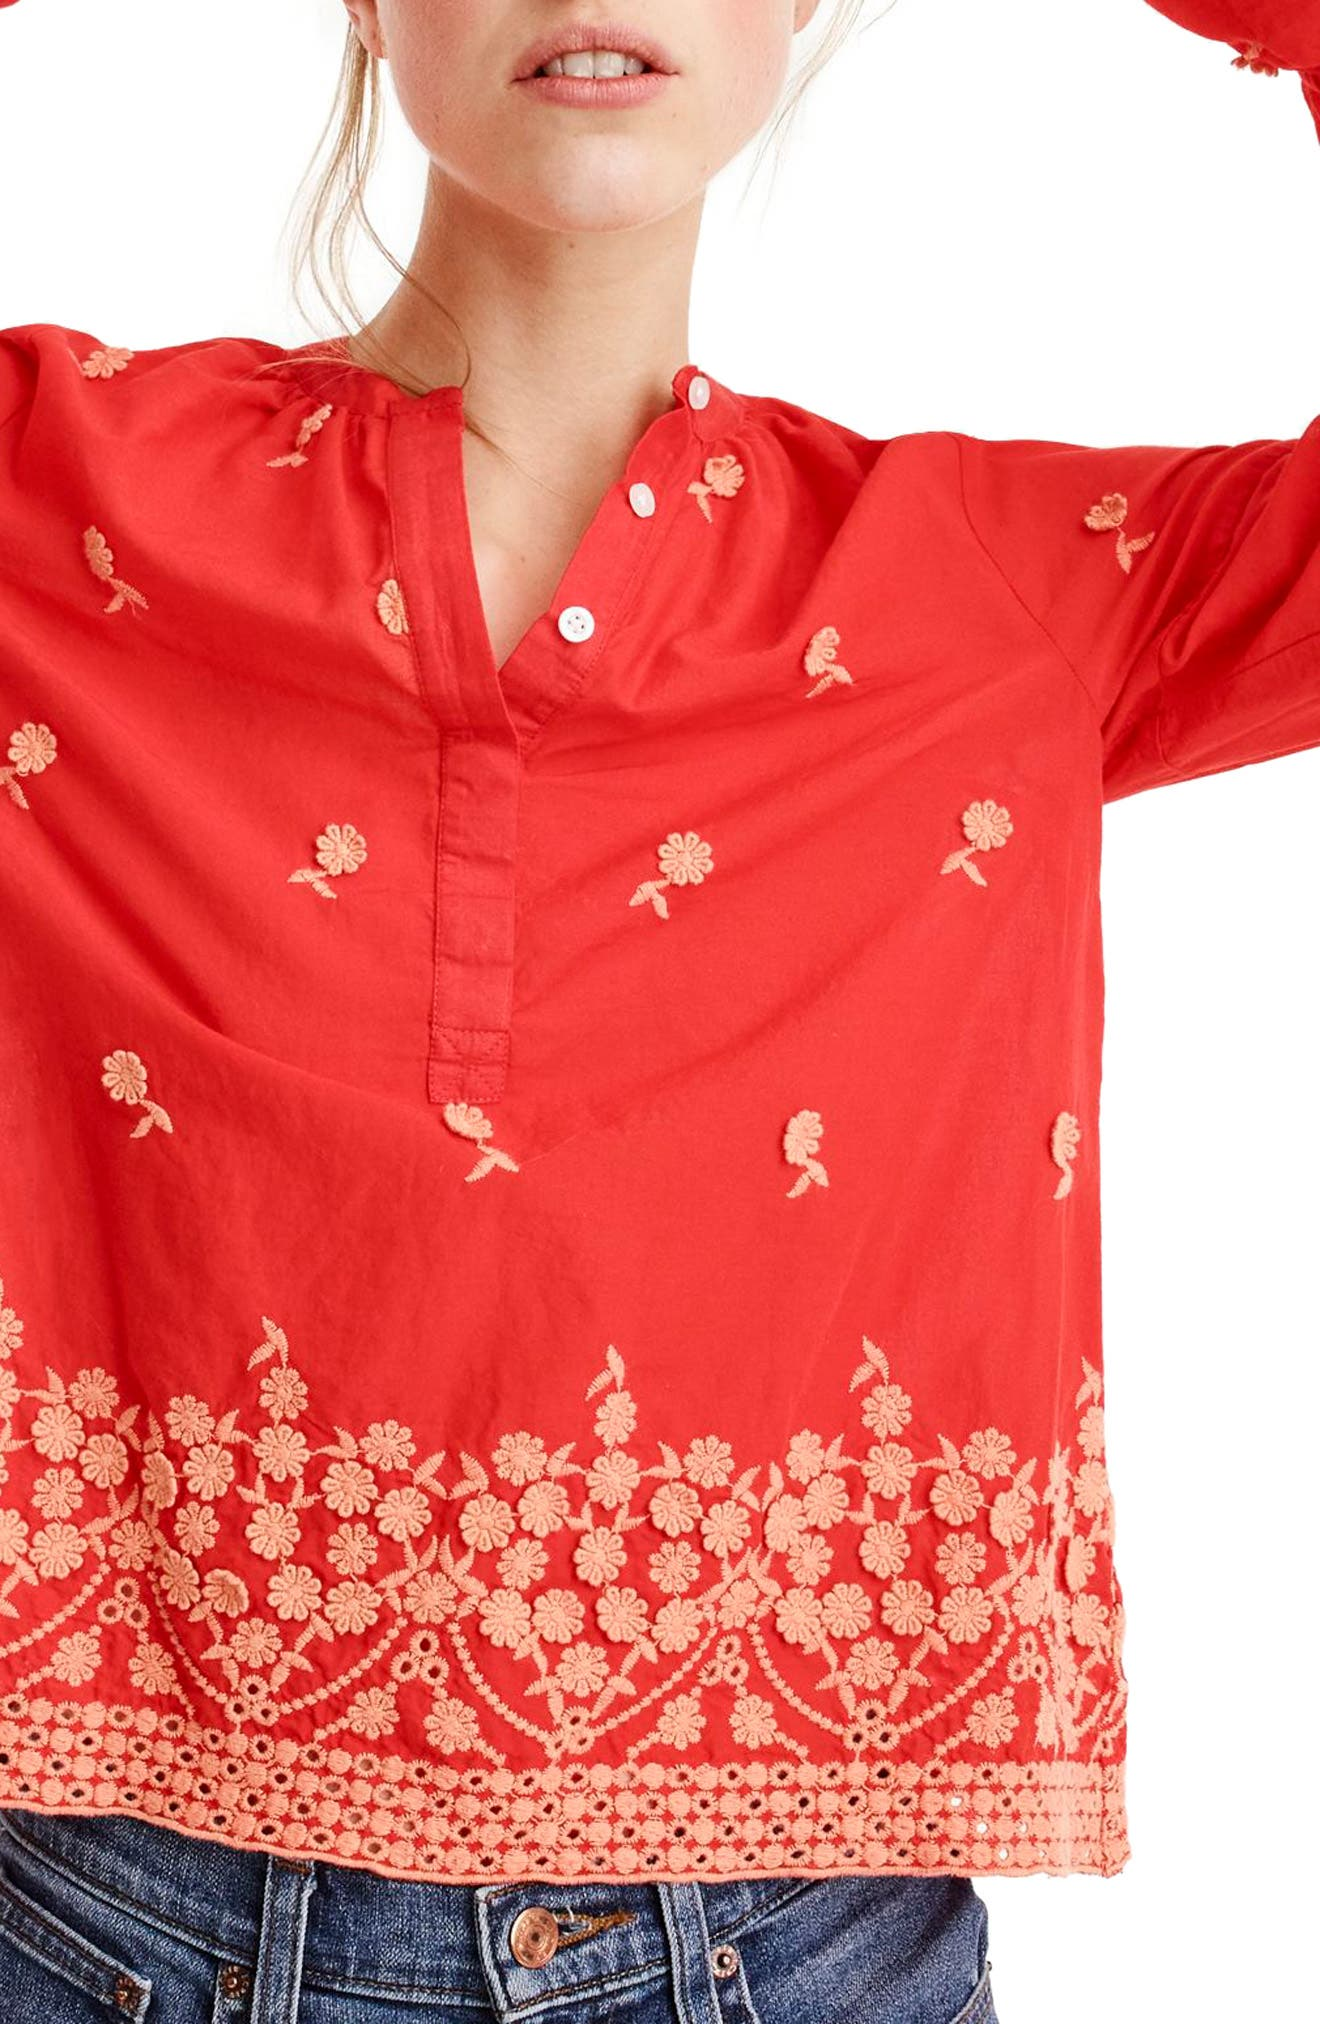 Main Image - J.Crew Floral Embroidered Popover Blouse (Regular & Petite)